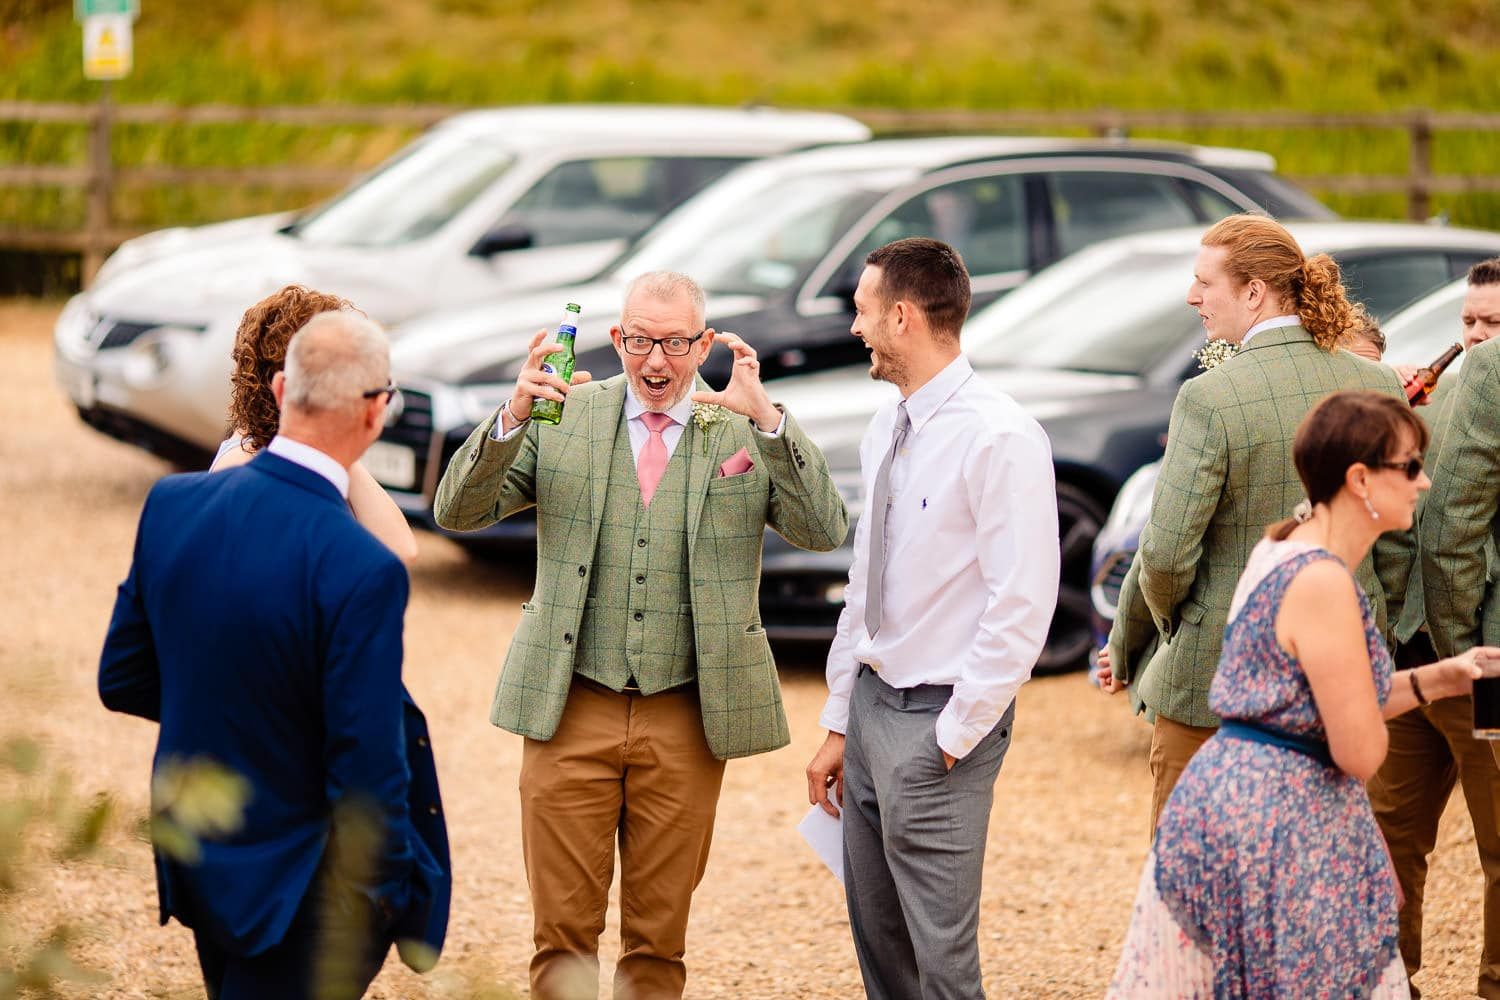 The Granary at Fawsley Wedding guests chatting